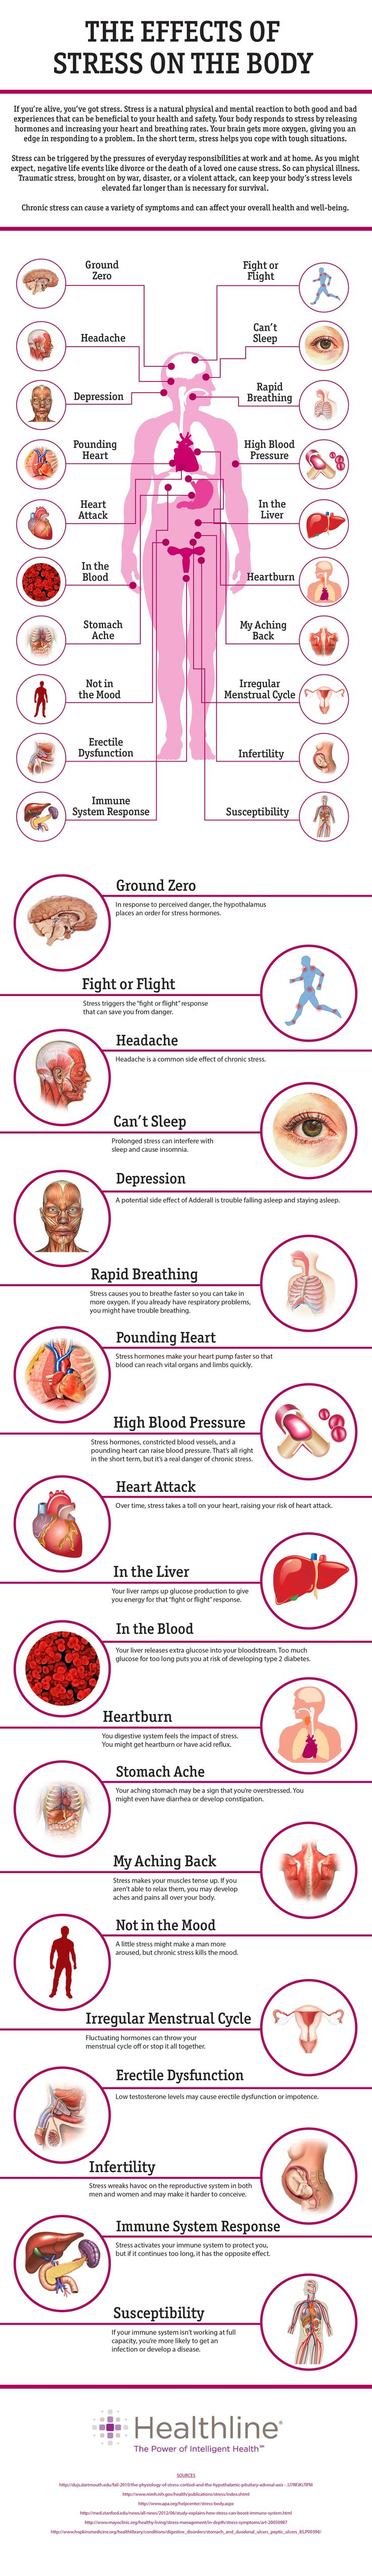 The Effects of Stress on the Body www.bodystressrelease.nl - www.bodystressrelease.com